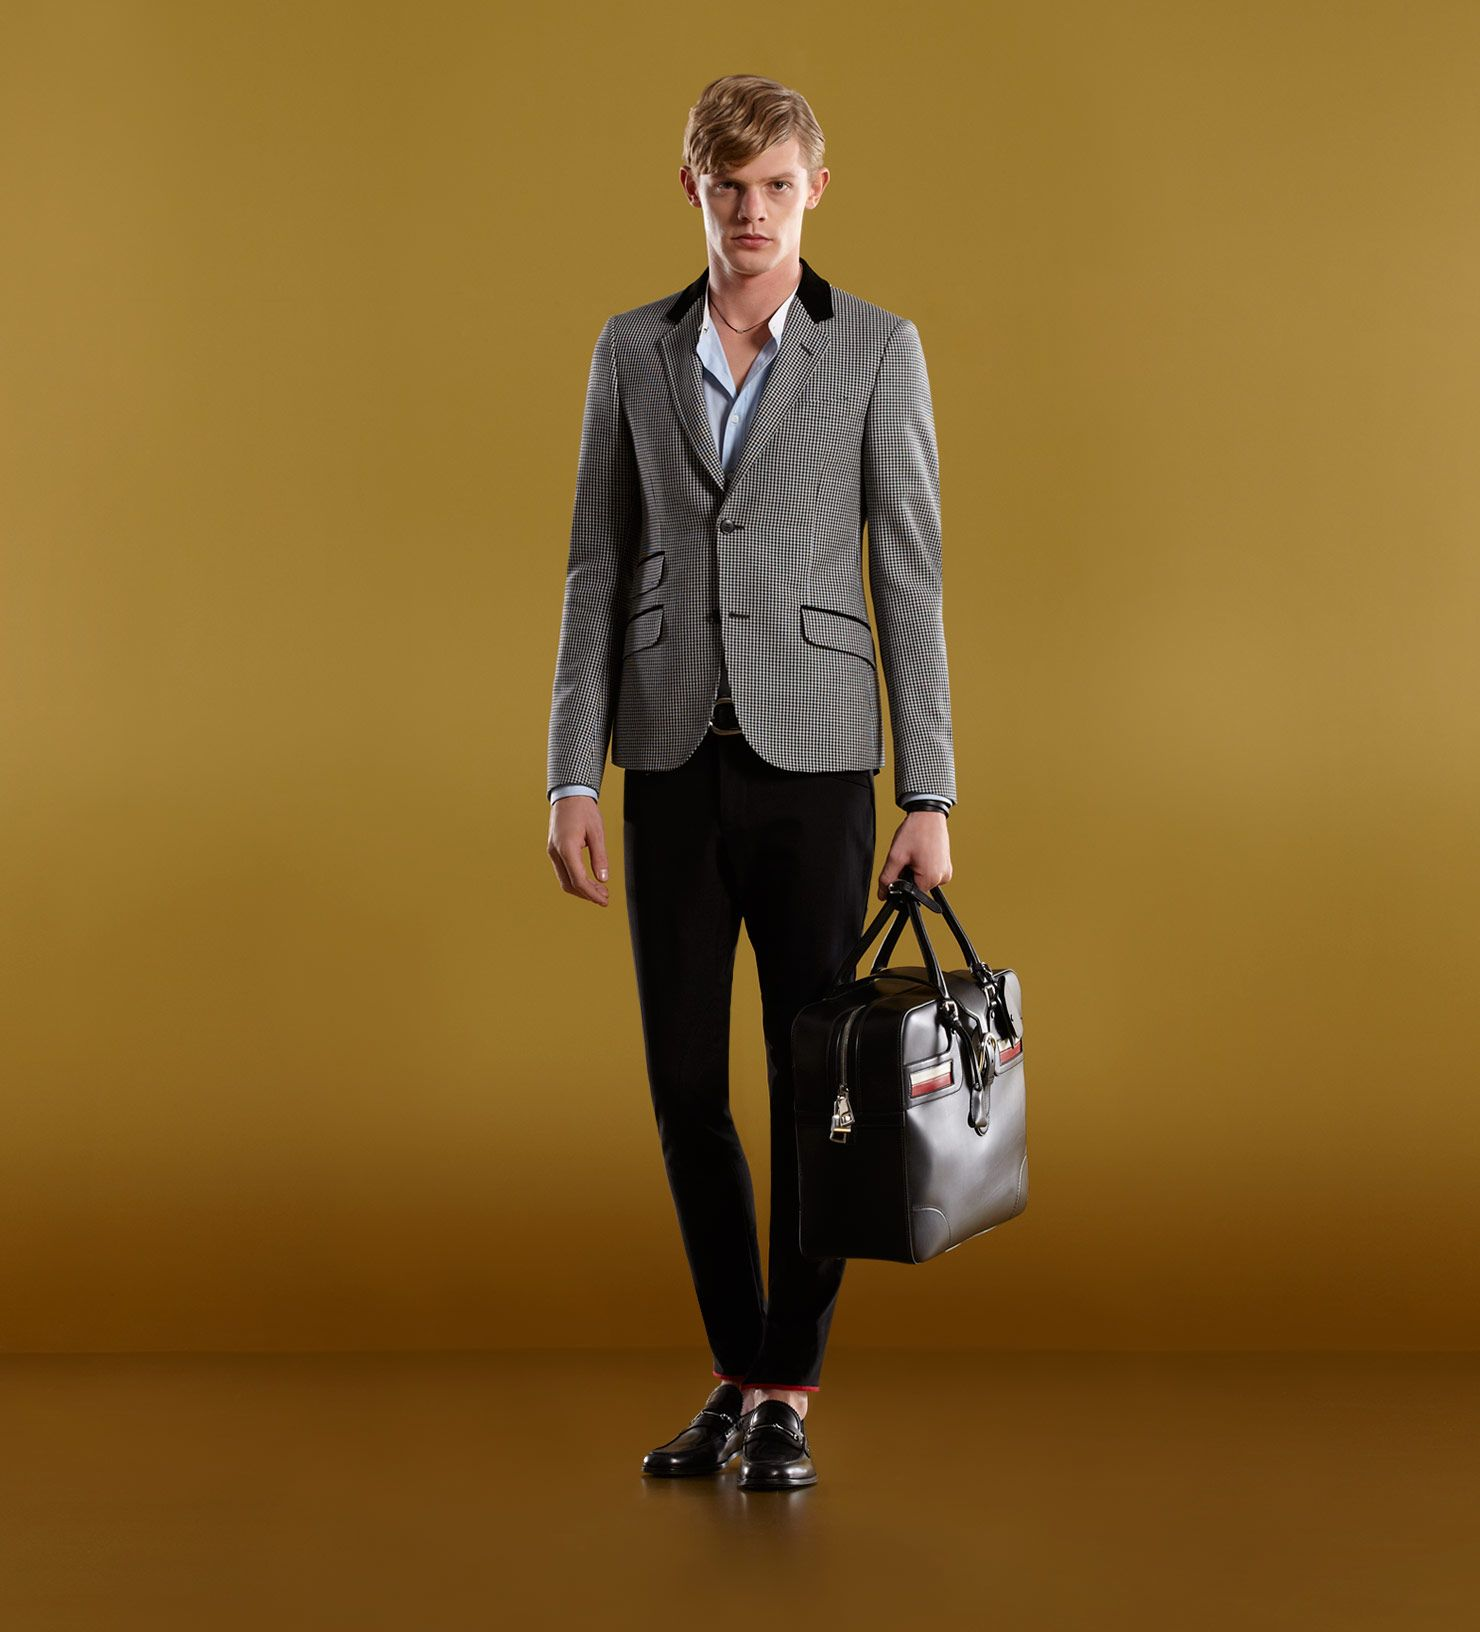 Men's ready to wear riding jacket with contrast collar and upper besom pocket.